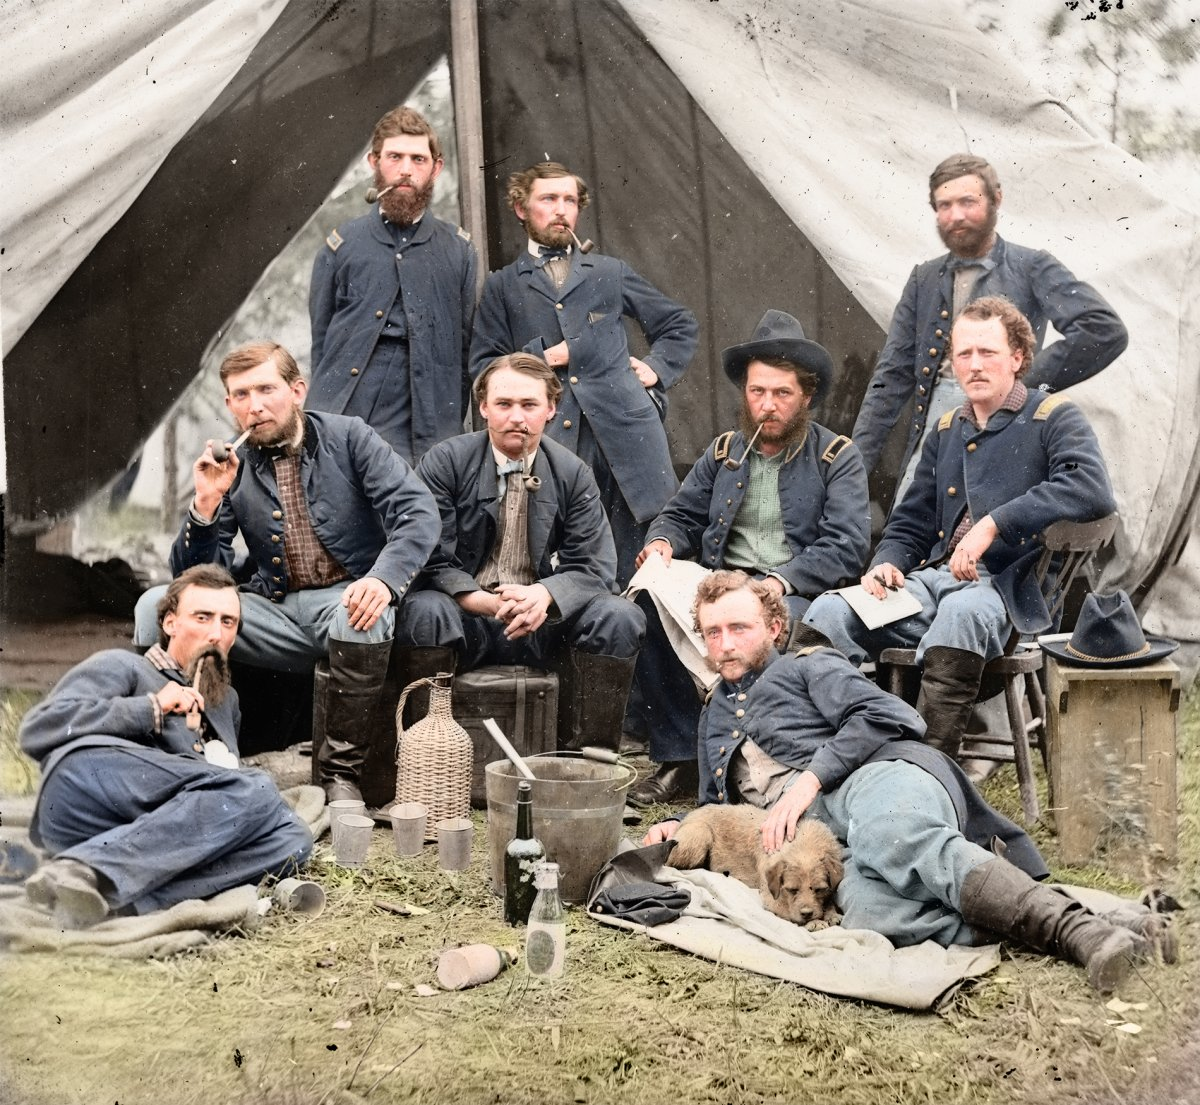 This photograph by Andrew Gardner depicts the staff of Brigadier General Andrew Porter in 1862. George Custer (of the Battle of Little Bighorn fame) is shown reclining next to a dog on the right. Today, technology allows colorization bringing older wars even closer to home by showing how it might have actually looked in person. Photo courtesy of Business Insider at http://linkis.com/vdO8K